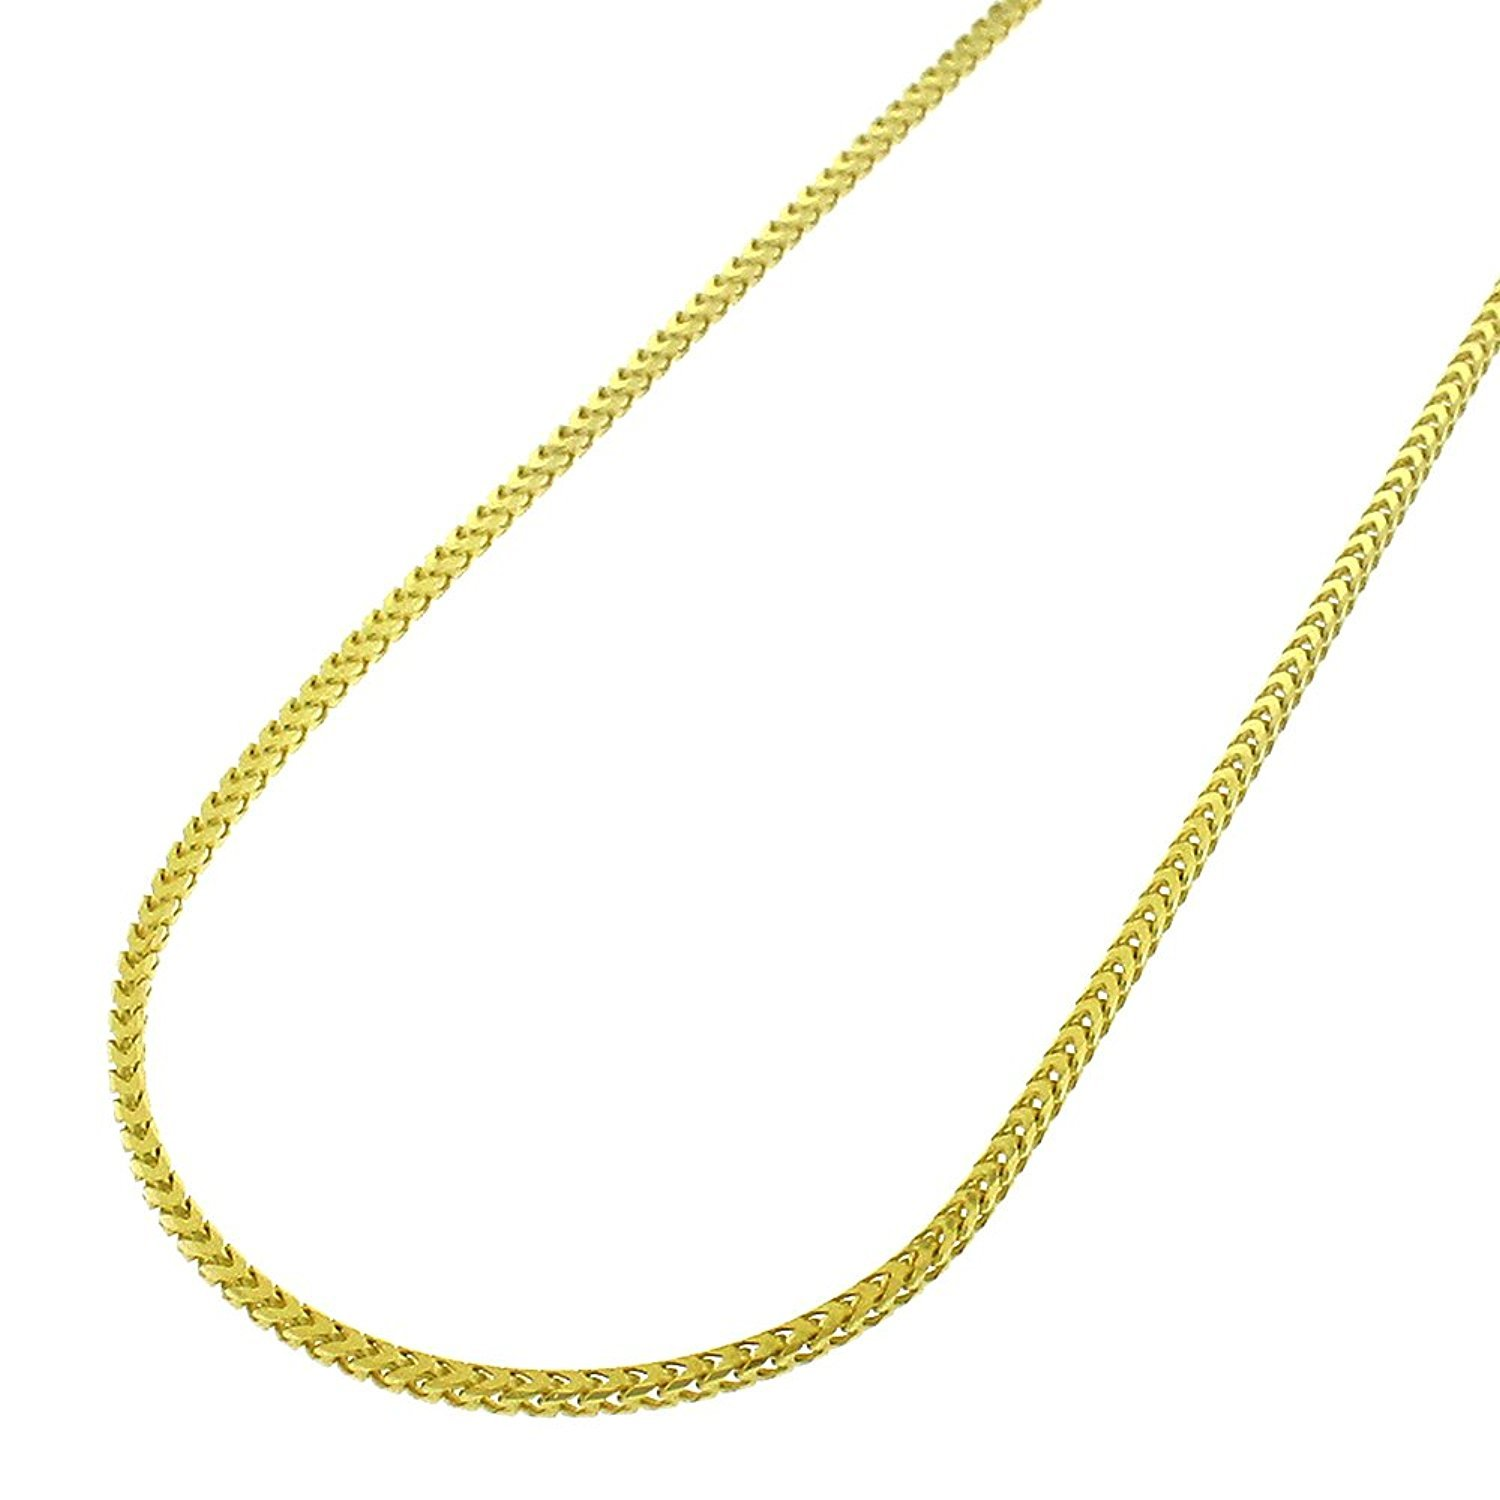 14k Yellow Gold 1mm Solid Franco Square Box Link Necklace Chain 16'' - 24'' (24)